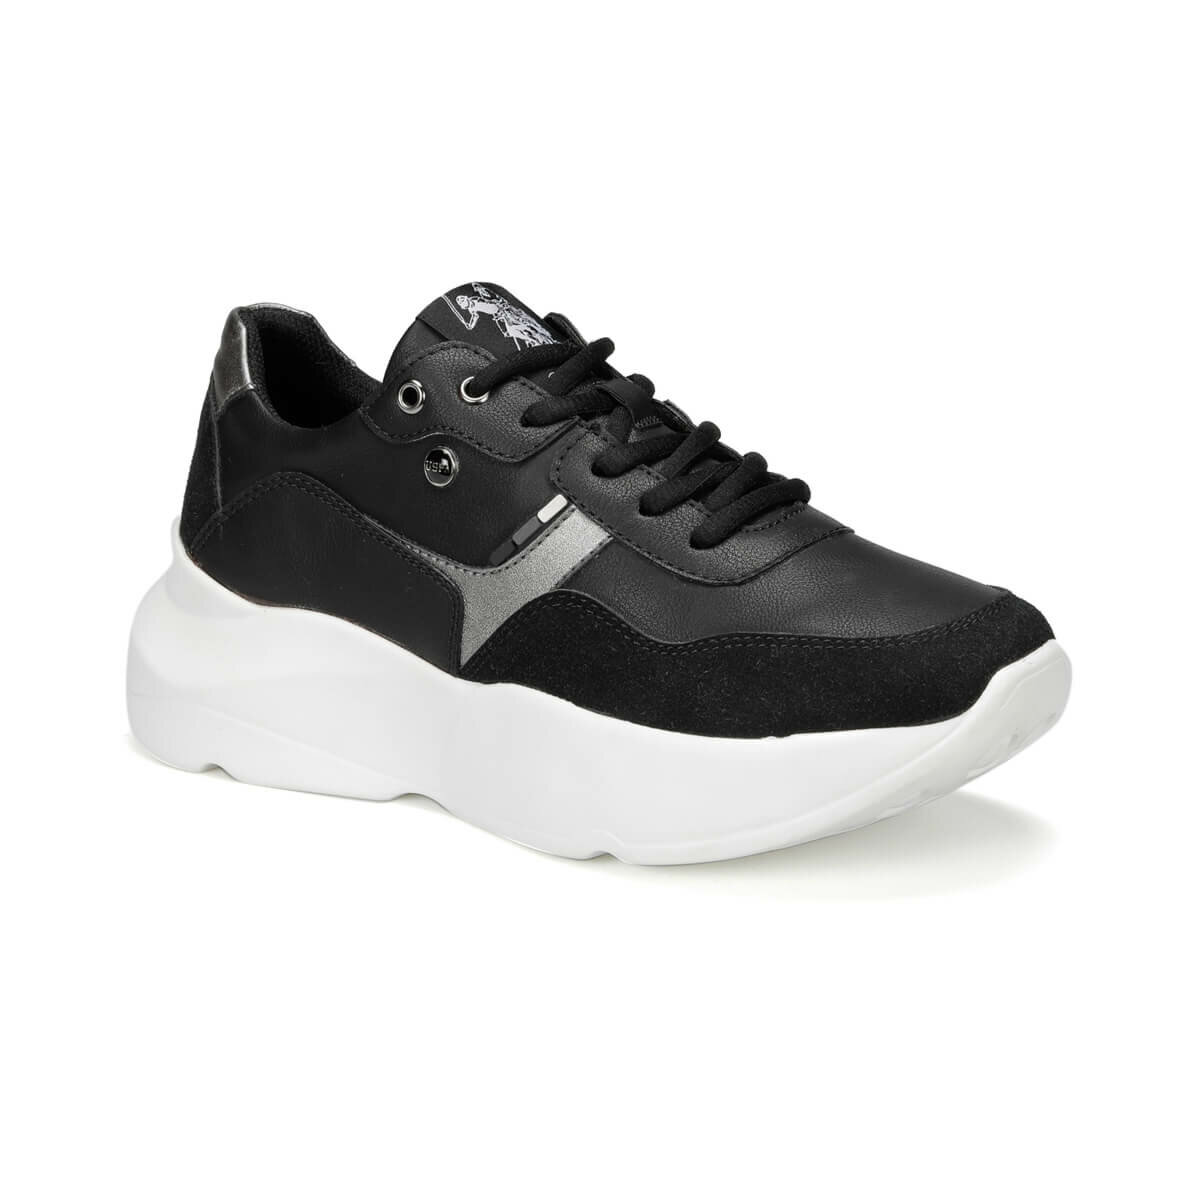 FLO JAILY 9PR Black Women 'S Sneaker Shoes U.S. POLO ASSN.